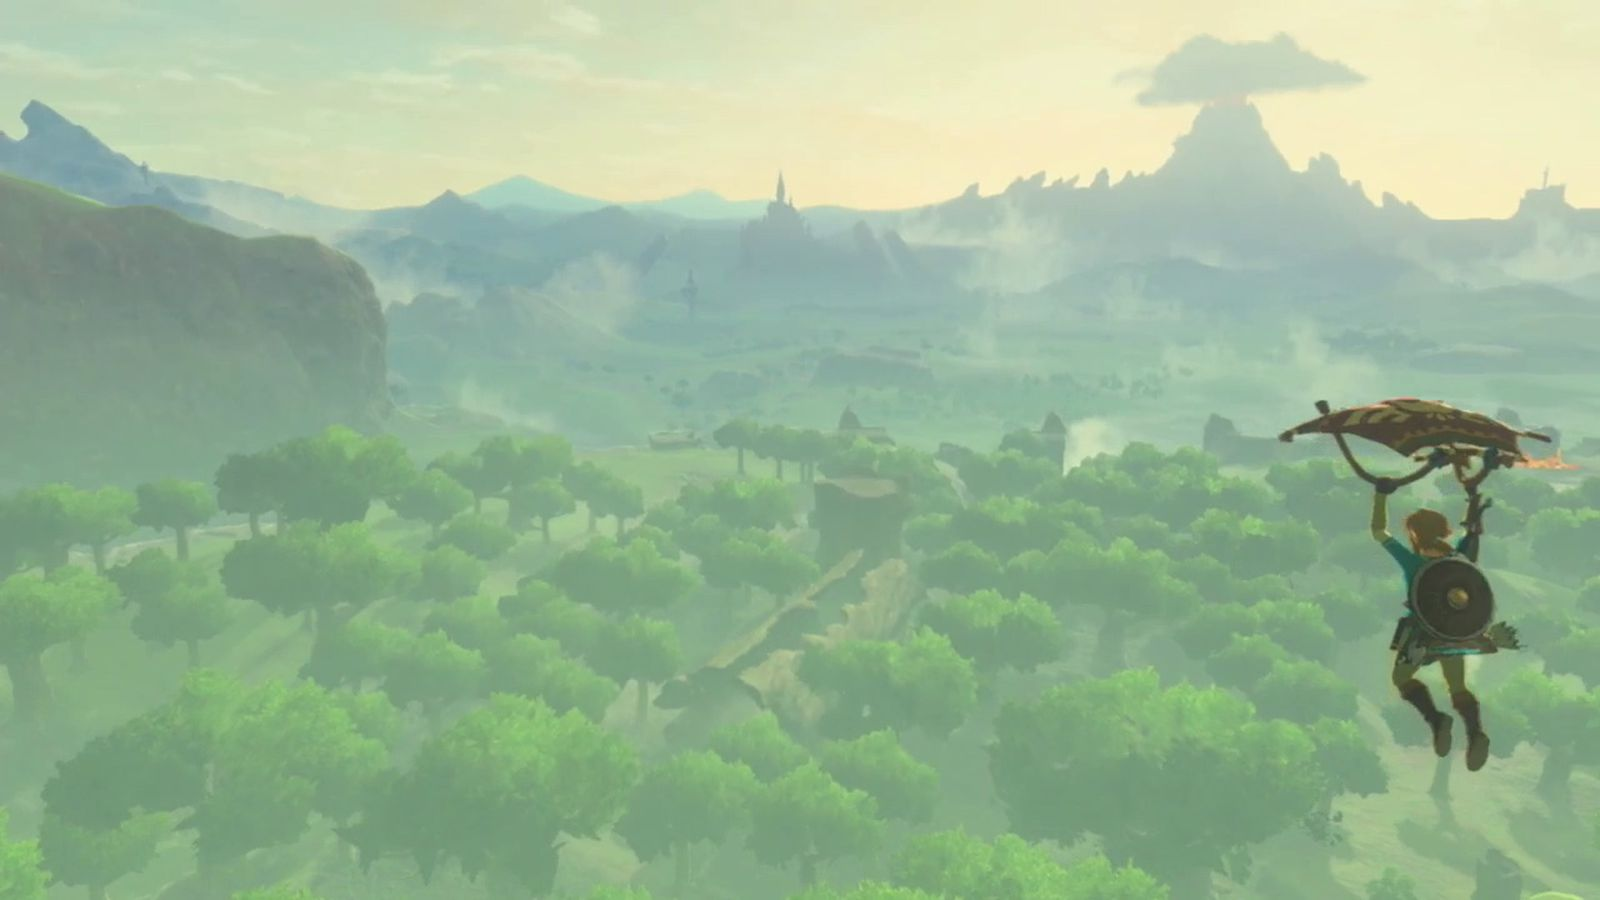 The Legend of Zelda: Breath of the Wild: Everything we know